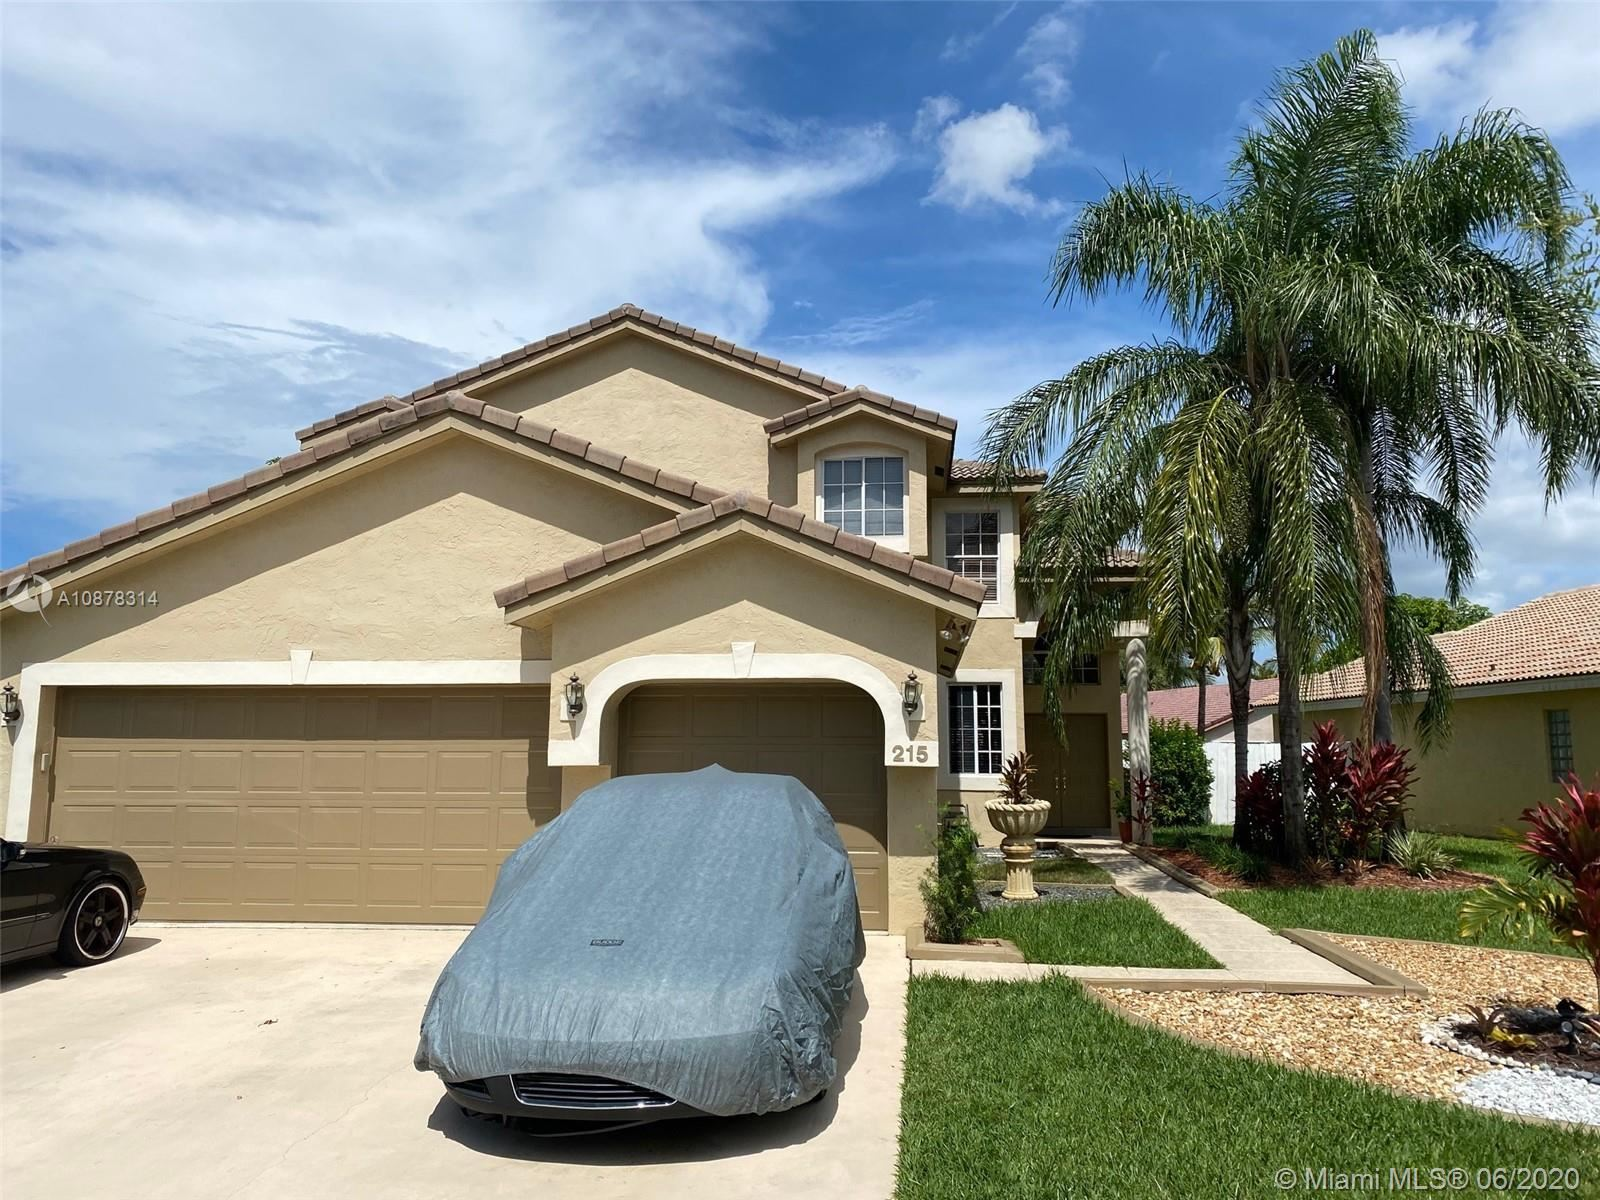 215 SW 180th Ave, Pembroke Pines, FL 33029 - #: A10878314